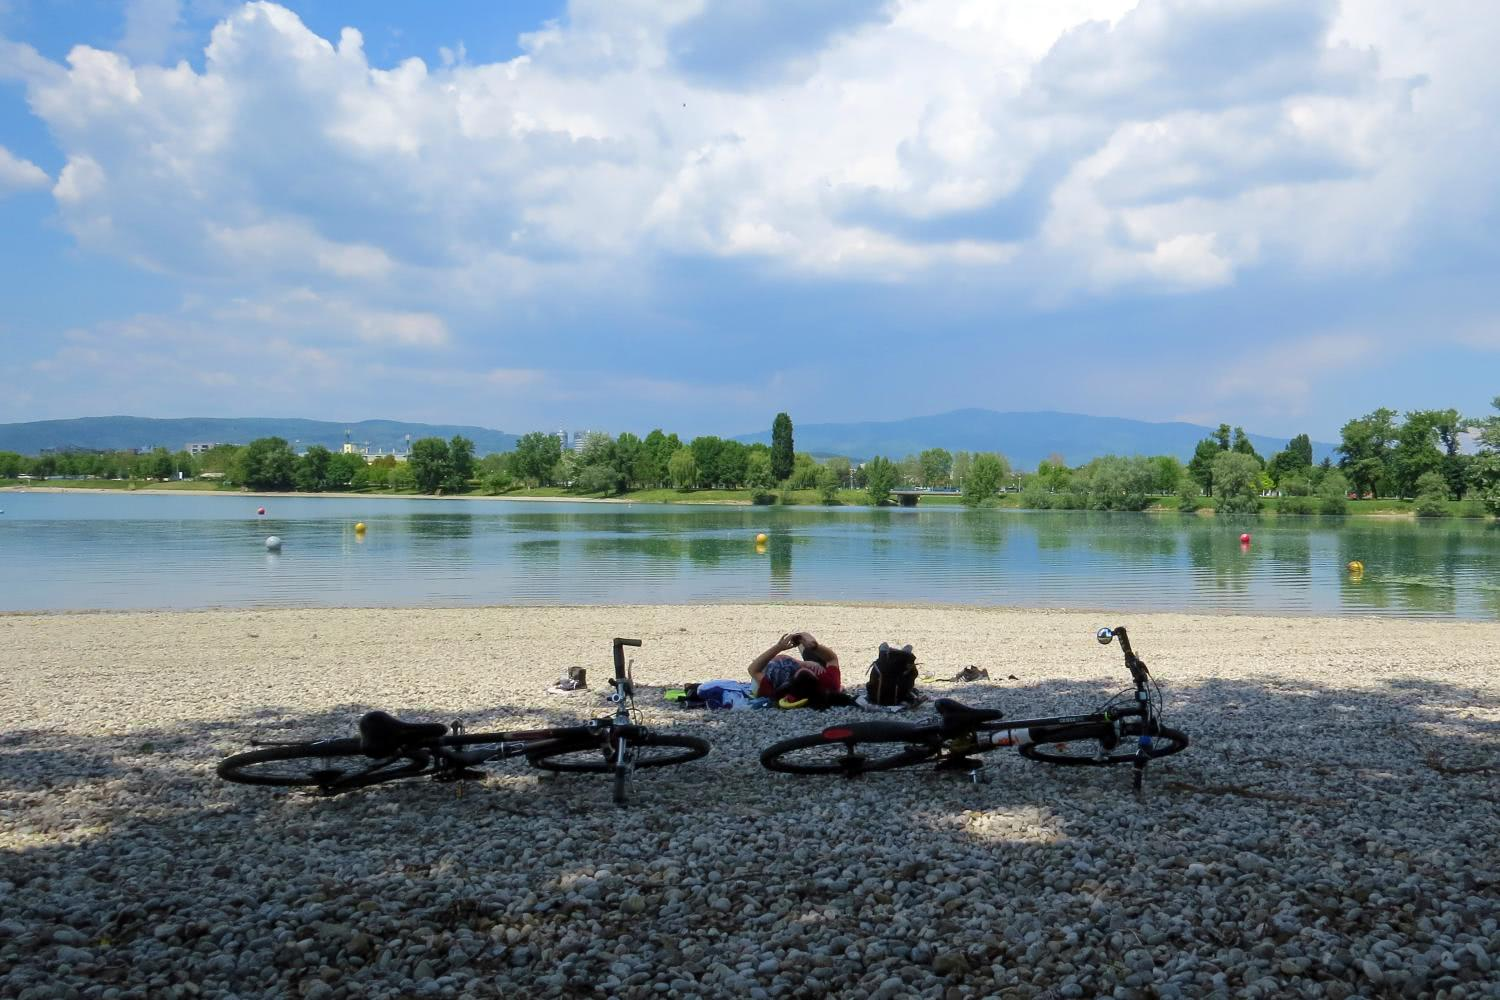 Biking Break Lake Jarun Croatia